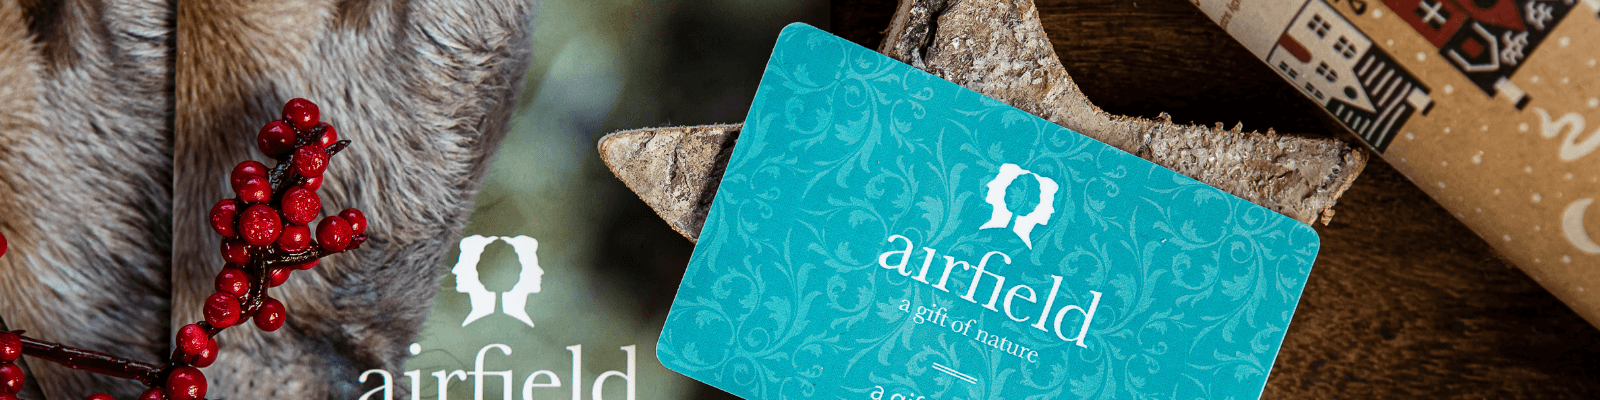 https://www.airfield.ie/wp-content/uploads/2020/11/Nature-and-nourish-gift-card-1.png